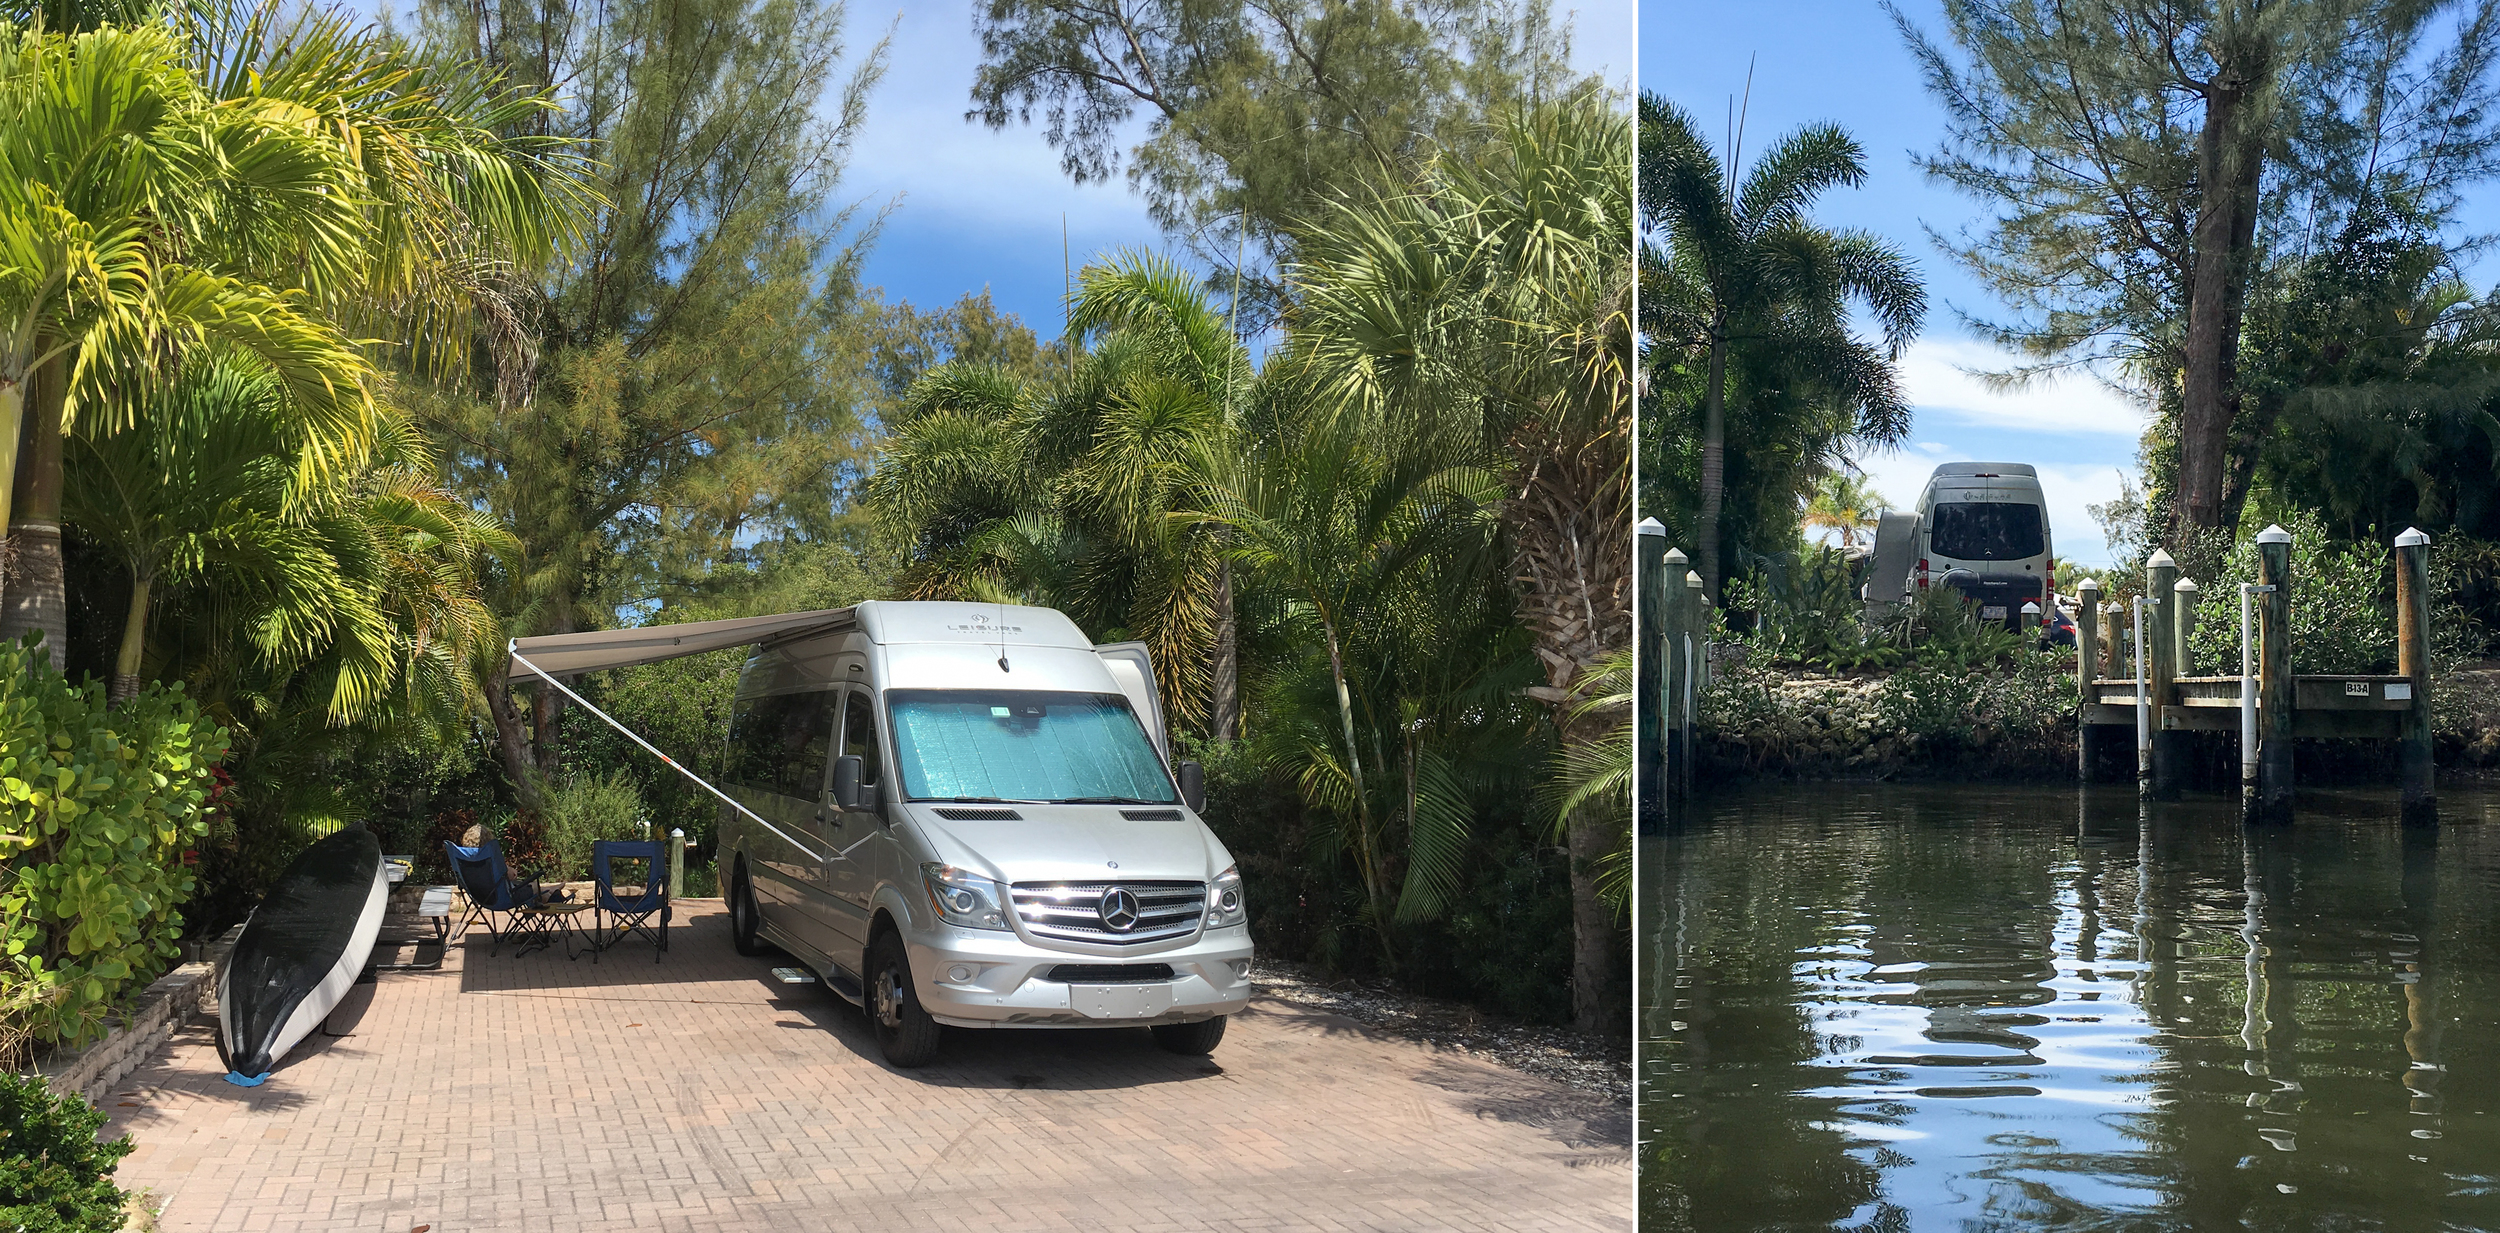 Land and water views of our campsite in Cortez, Florida